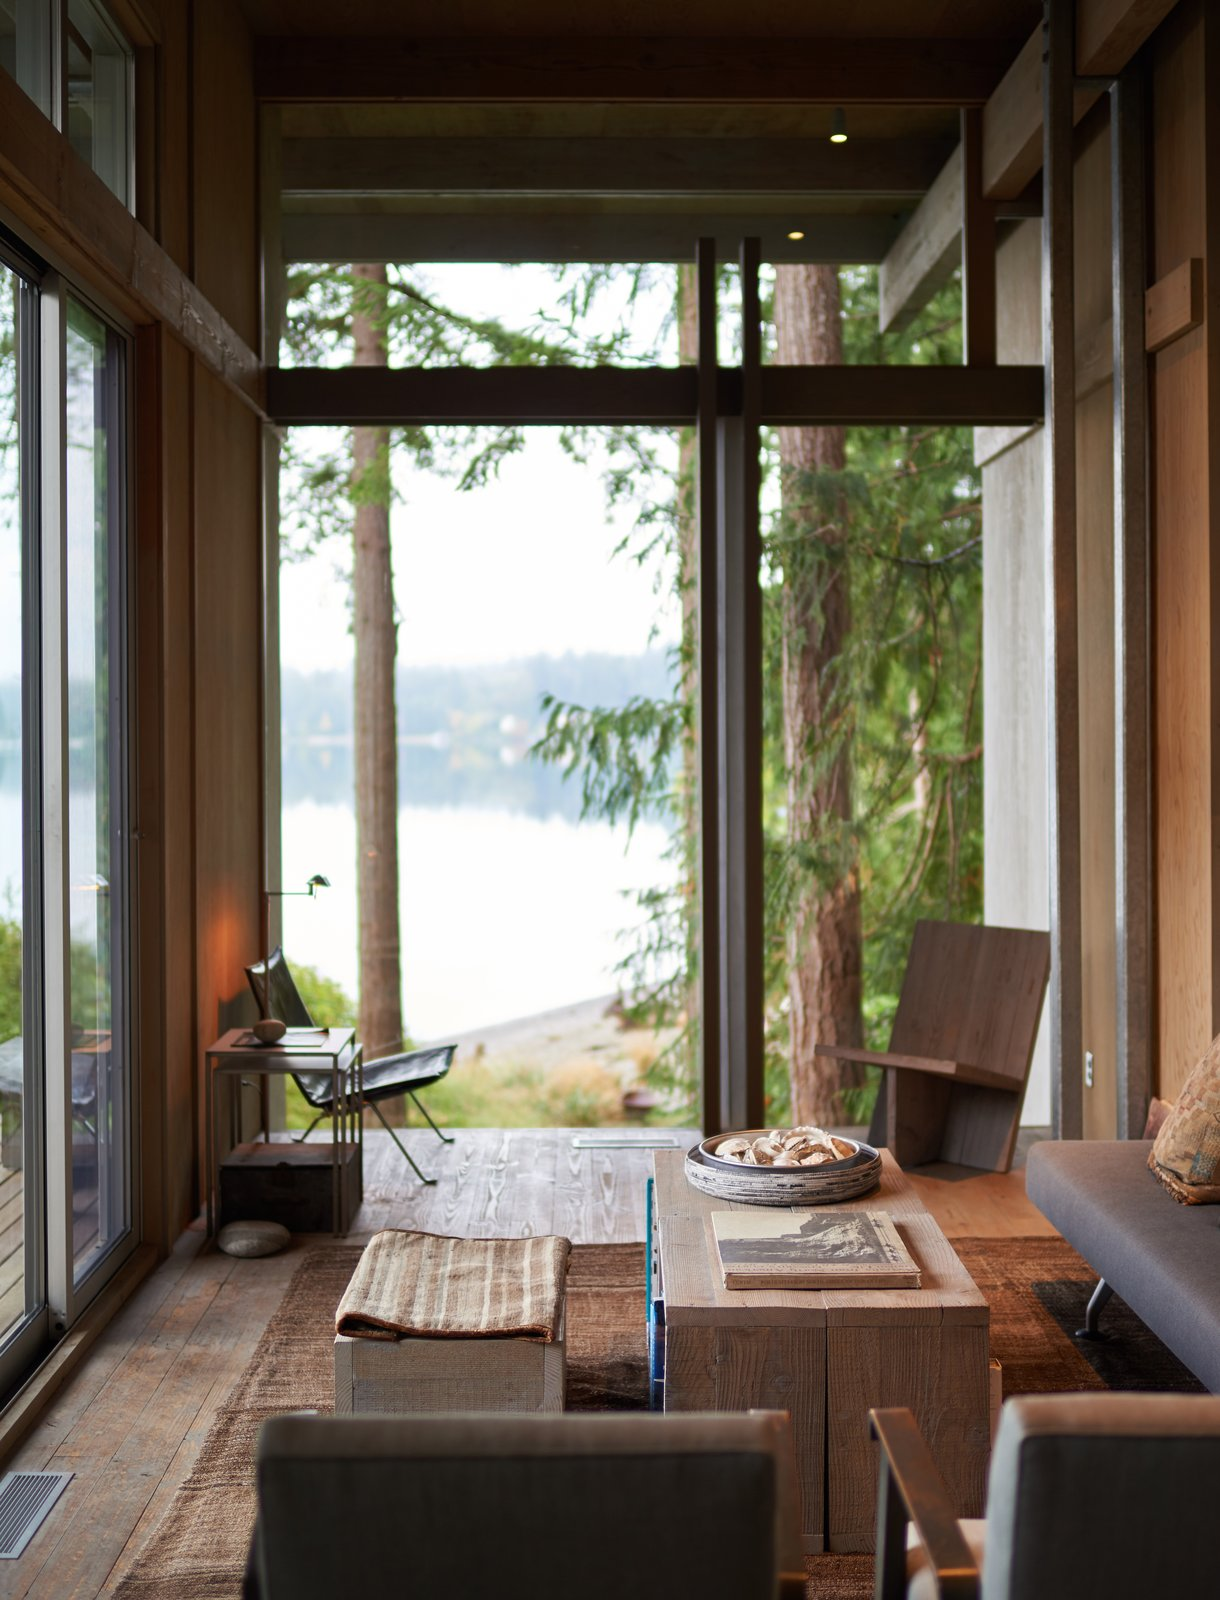 Cabin at Longbranch | Olson Kundig Tagged: Living Room, Coffee Tables, Chair, and Bench.  Cabin in Longbranch